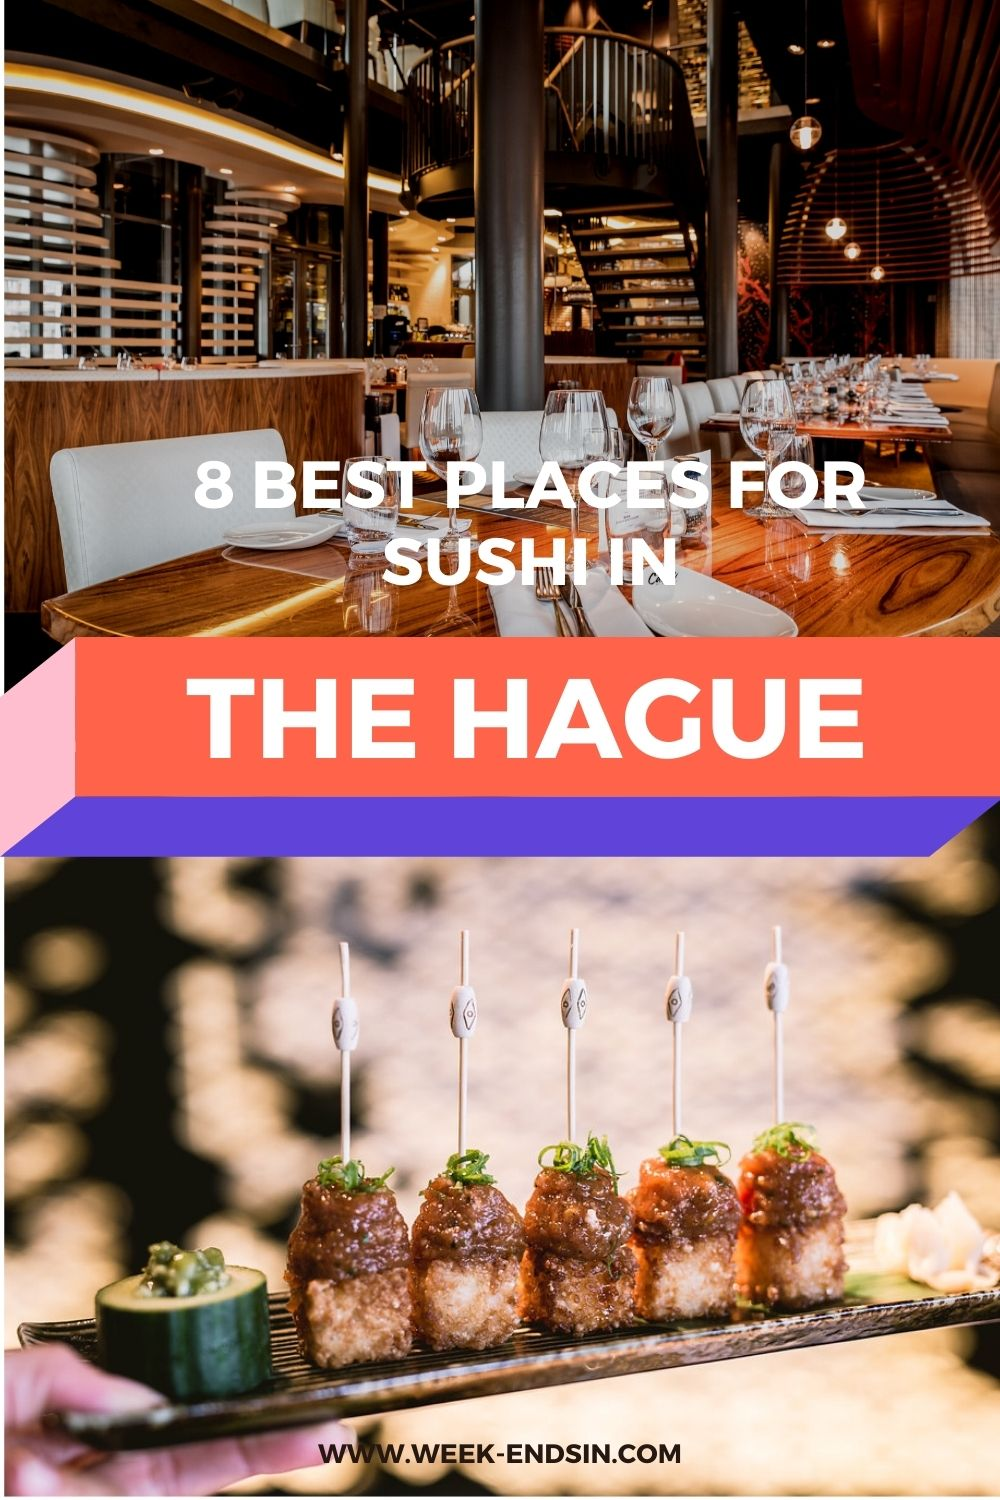 The best and most delicious places to eat sushi in The Hague? We've listed our favourites in this article!